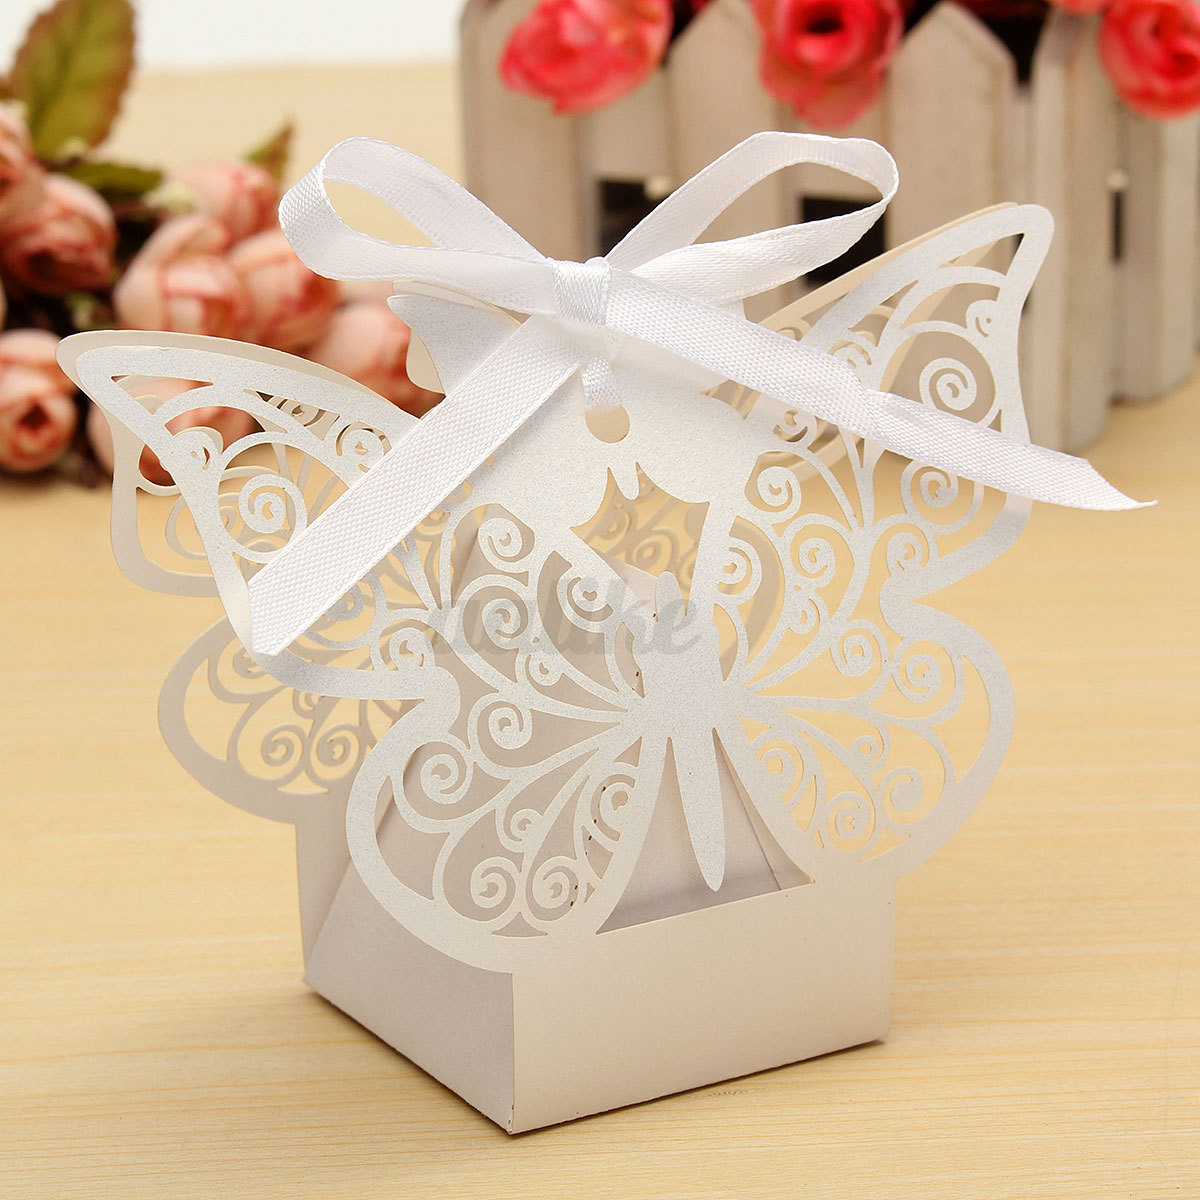 10 50pcs Paper Butterfly Wedding Cake Candy BOX Party